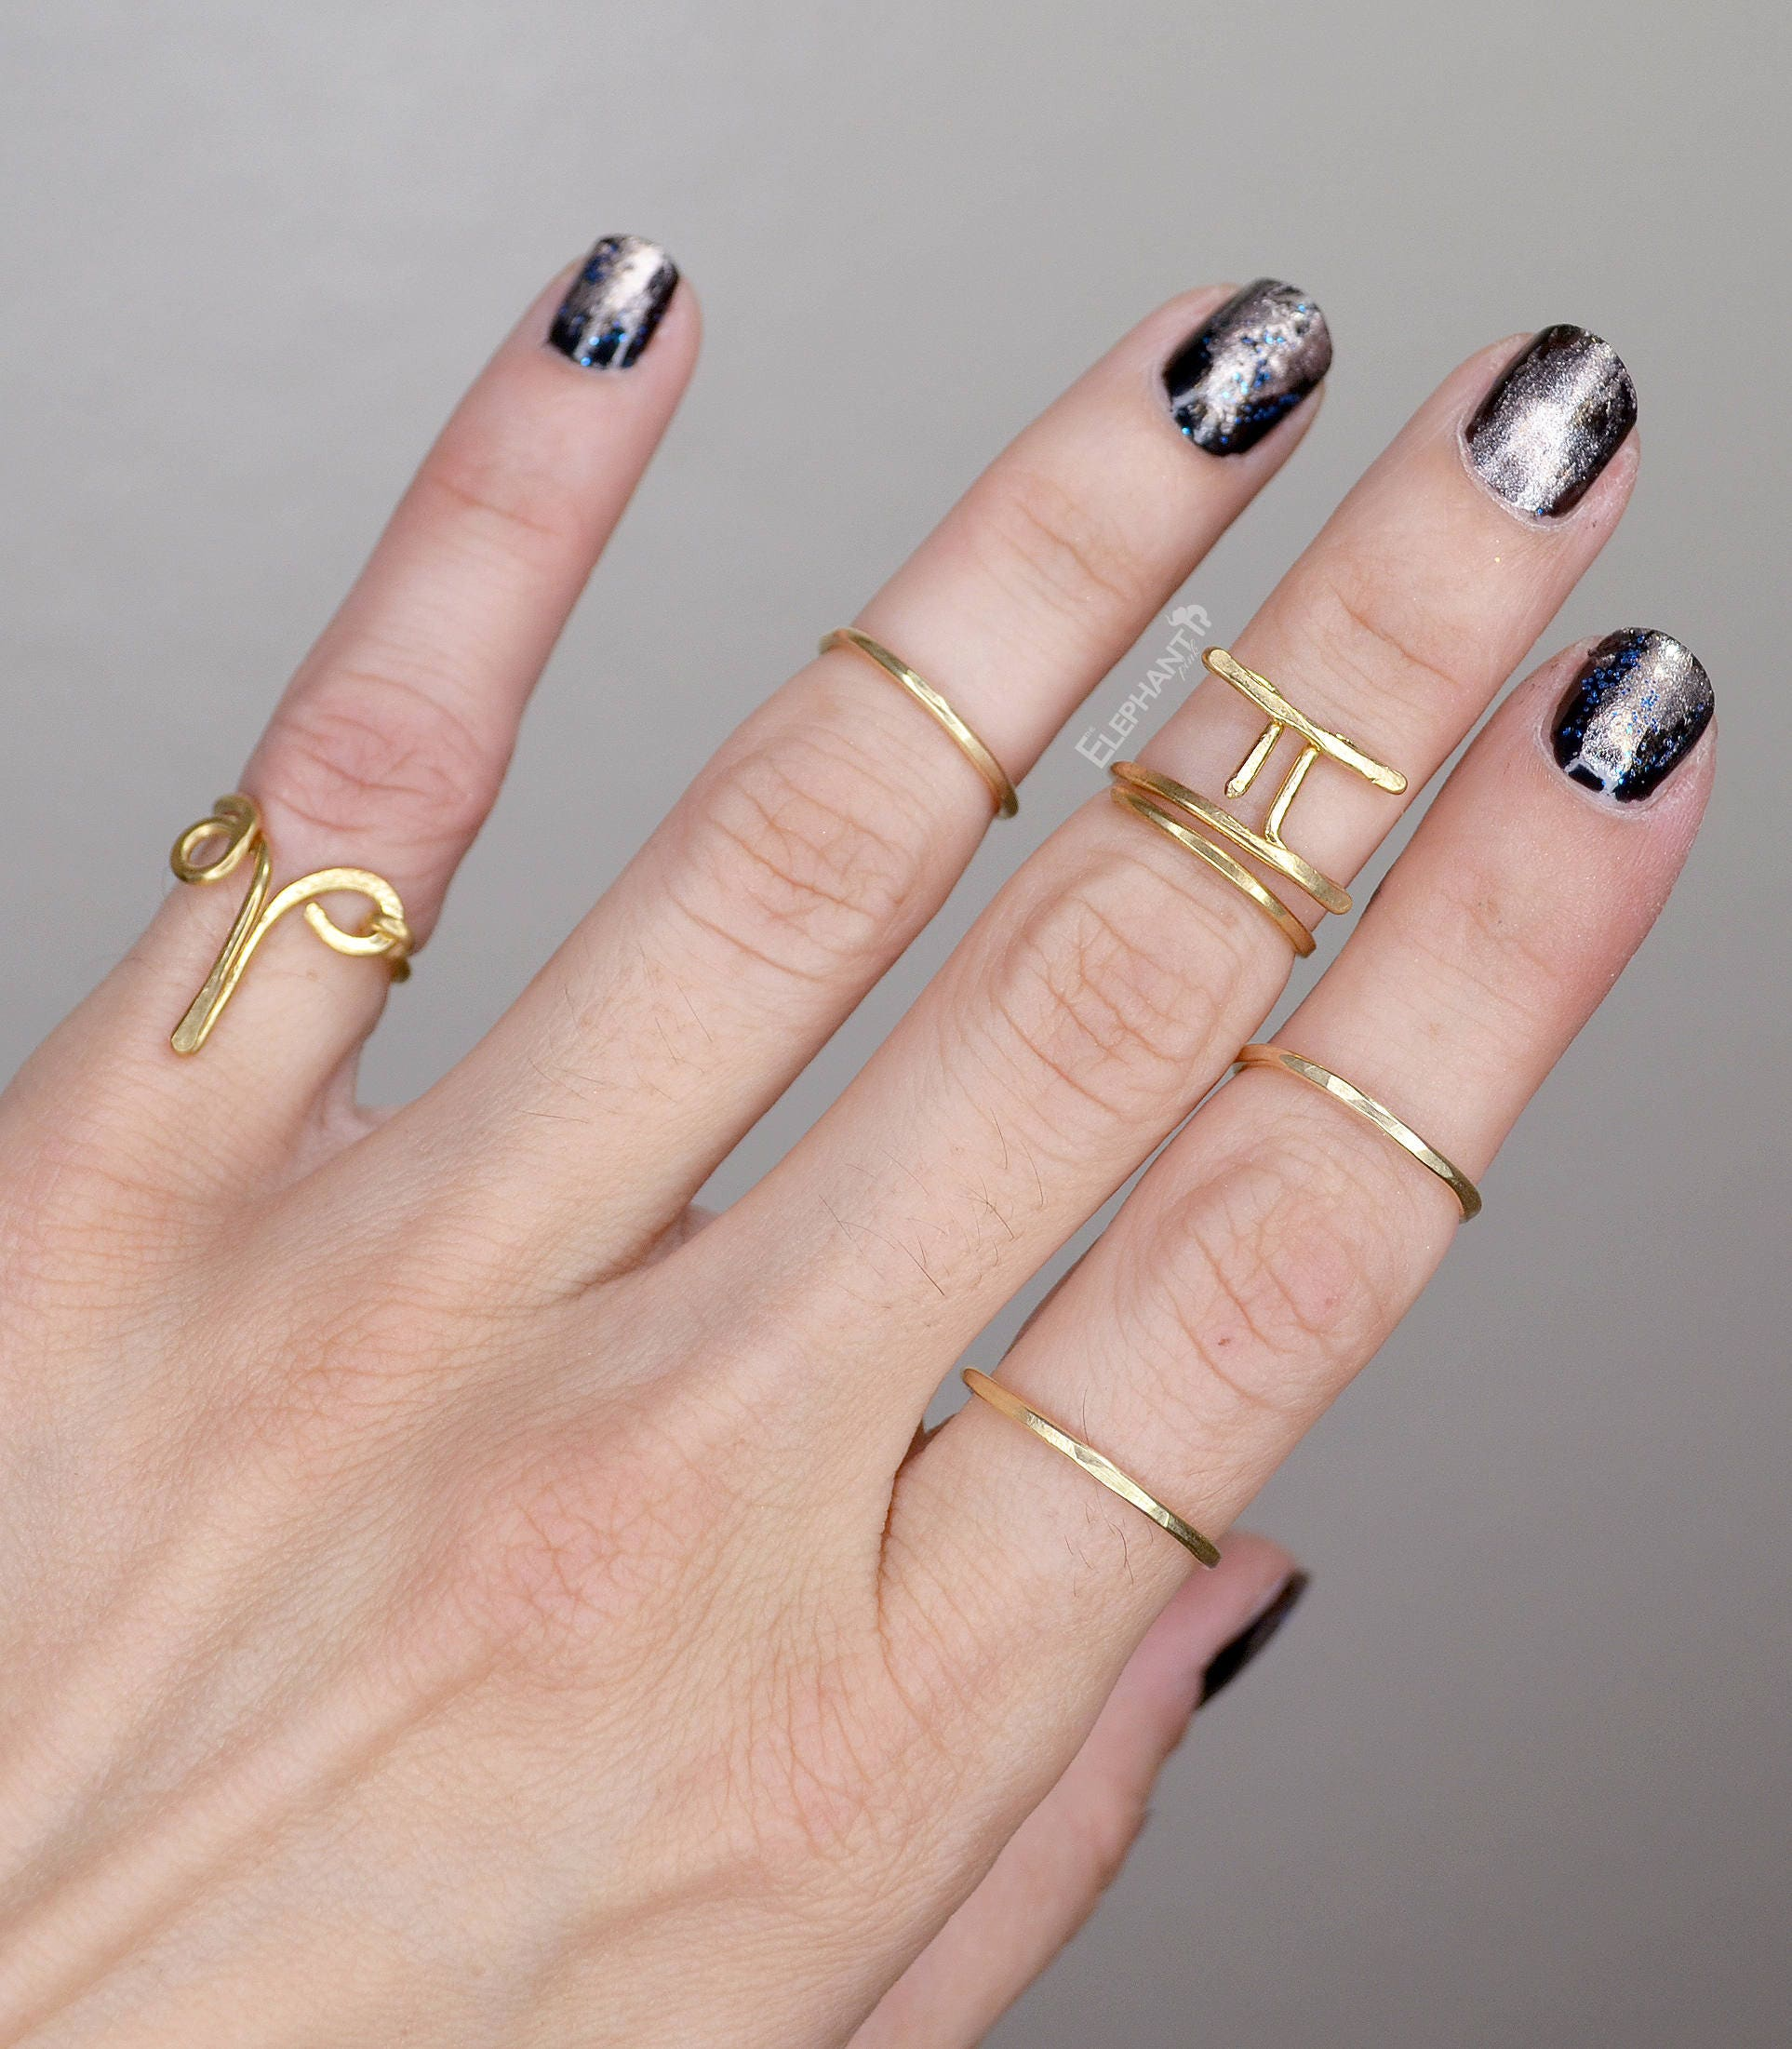 Horoscope Rings Set Zodiac Sign Ring Astrological Jewelry